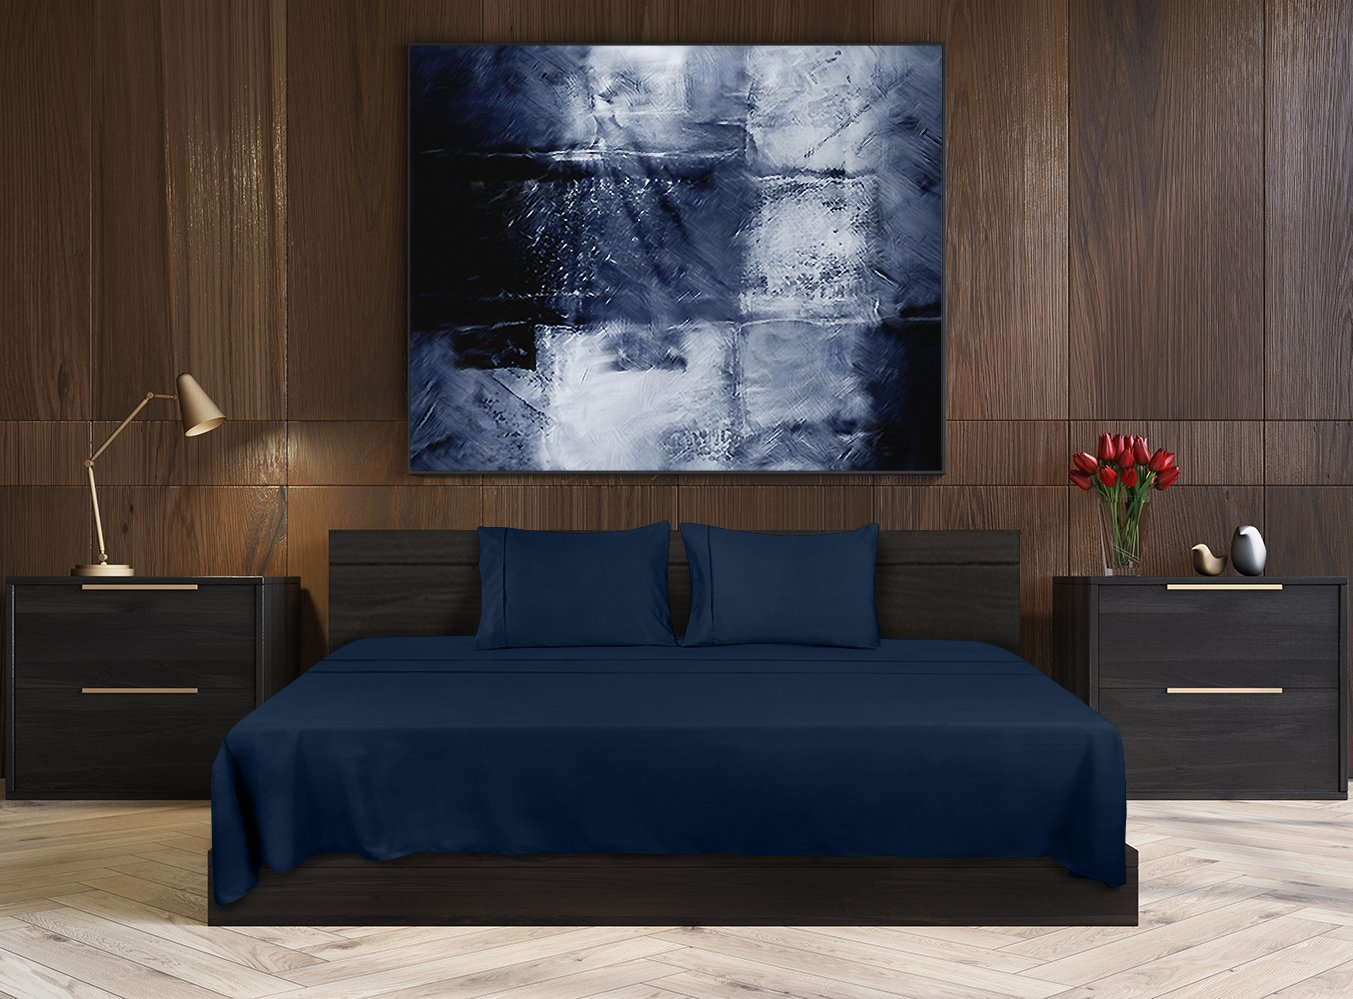 Utopia Bedding Soft Brushed Microfiber Wrinkle Fade and Stain Resistant 4-Piece King Bed Sheet Set - Navy